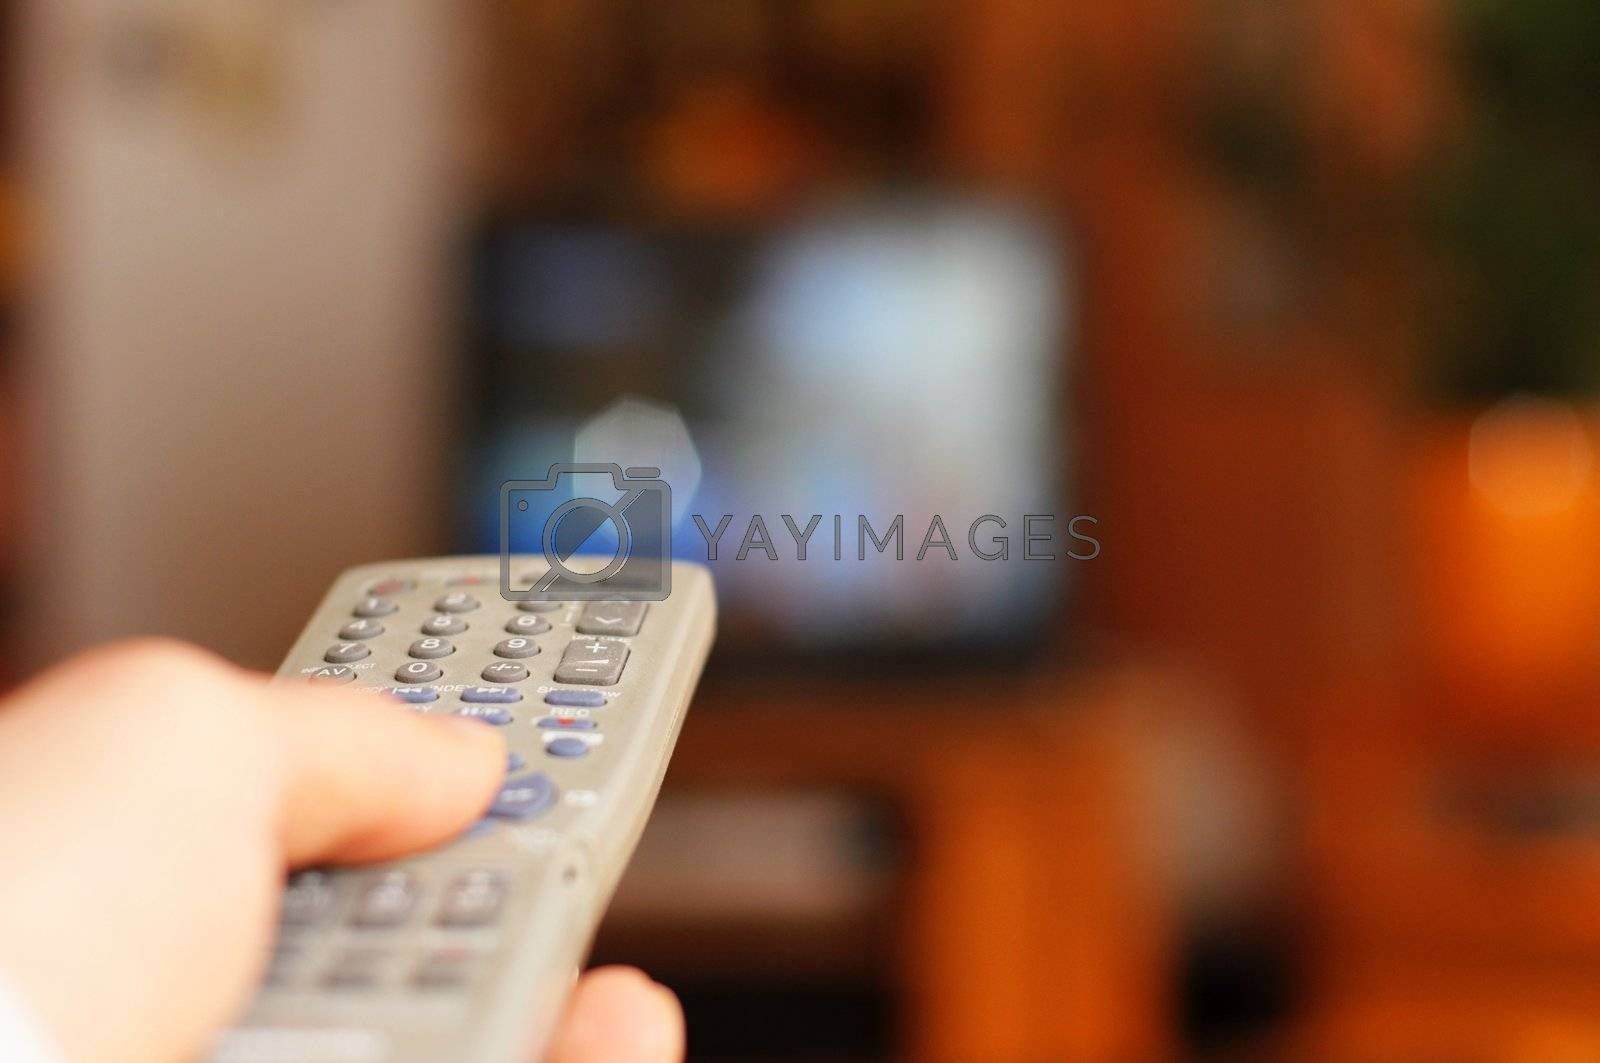 watch tv concept with hand remote control and copyspace for text message